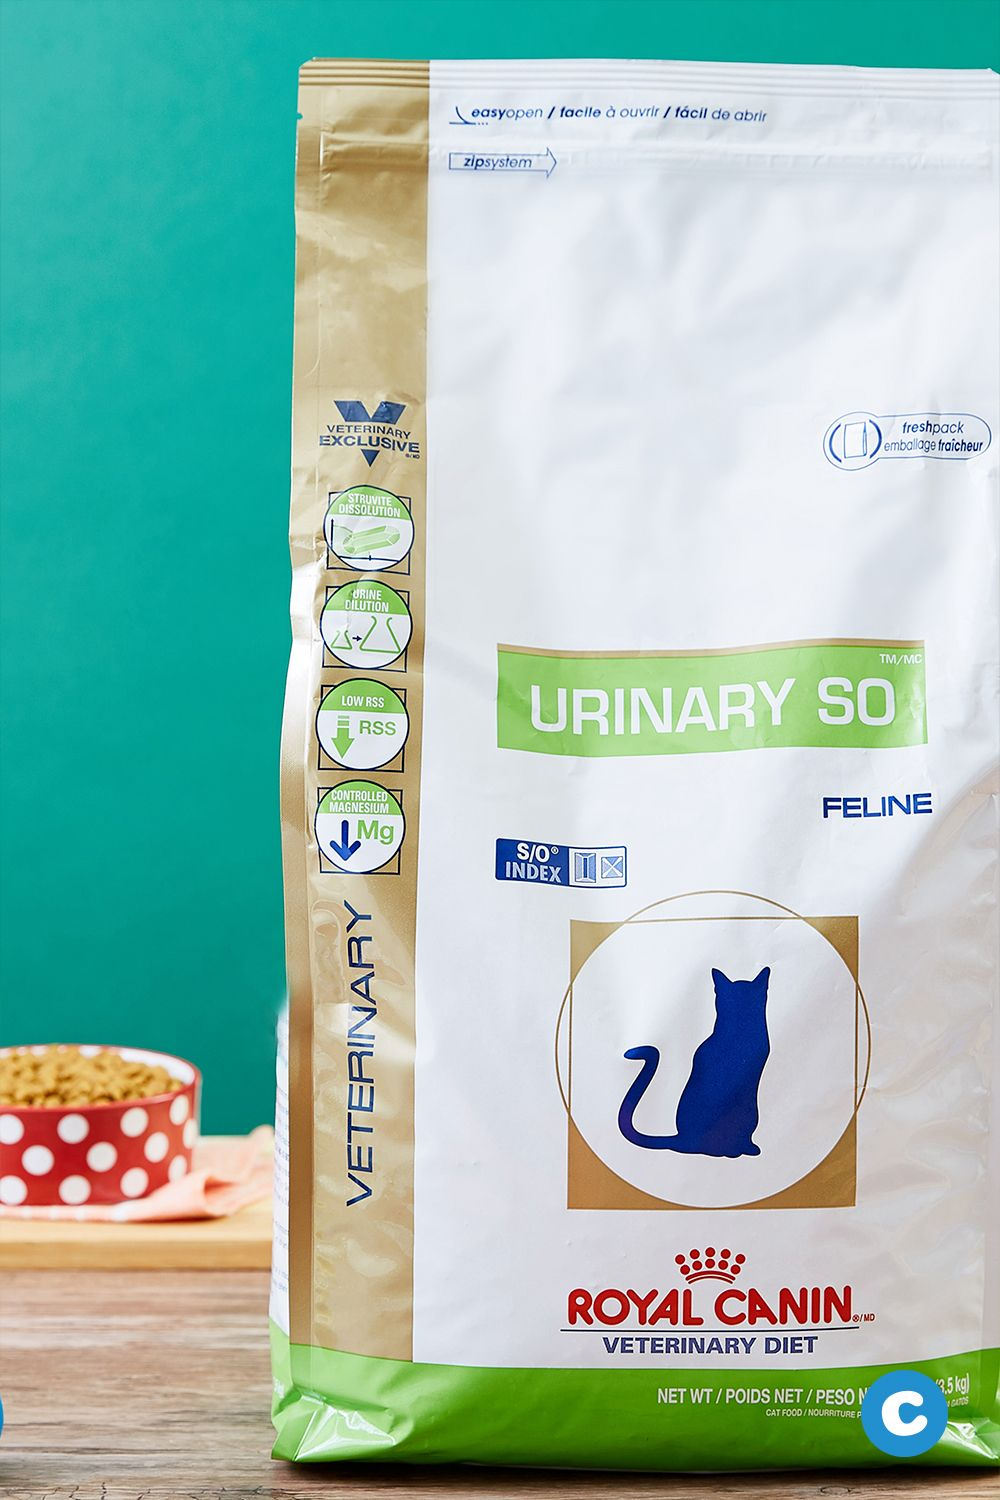 Formulated for adult cats with urinary health issues